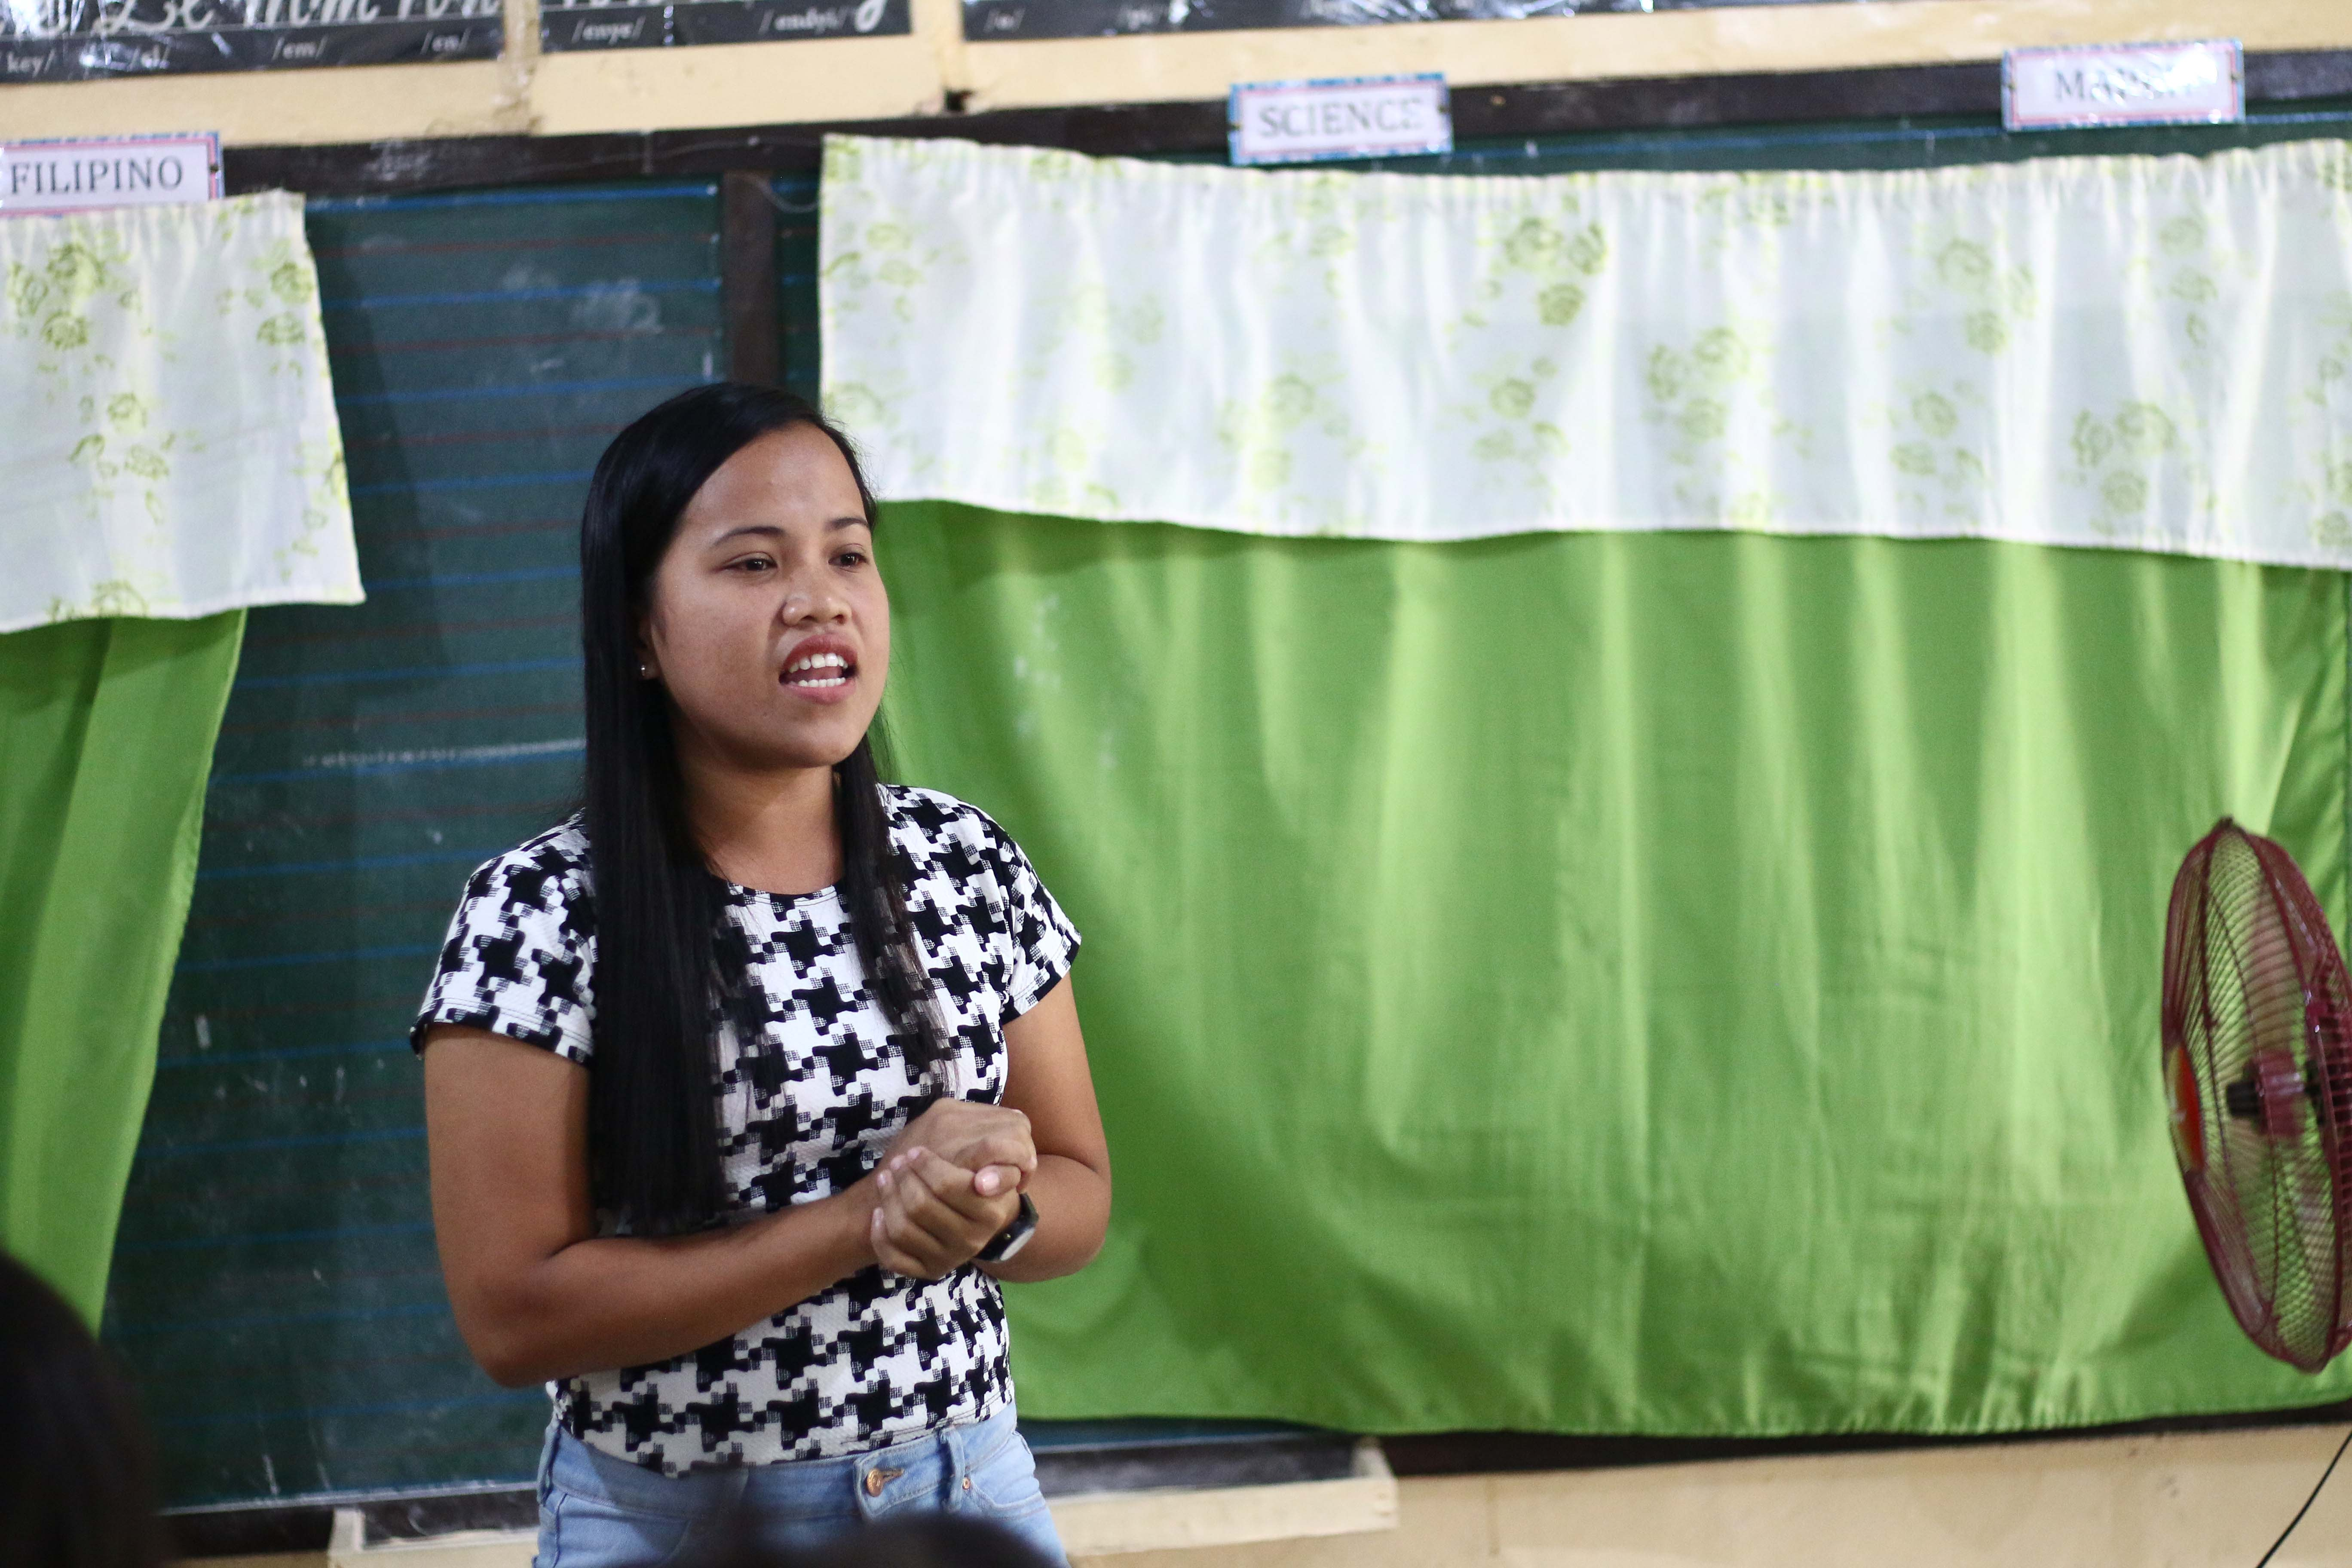 Now Elsa is living her dream teaching children in the Philippines